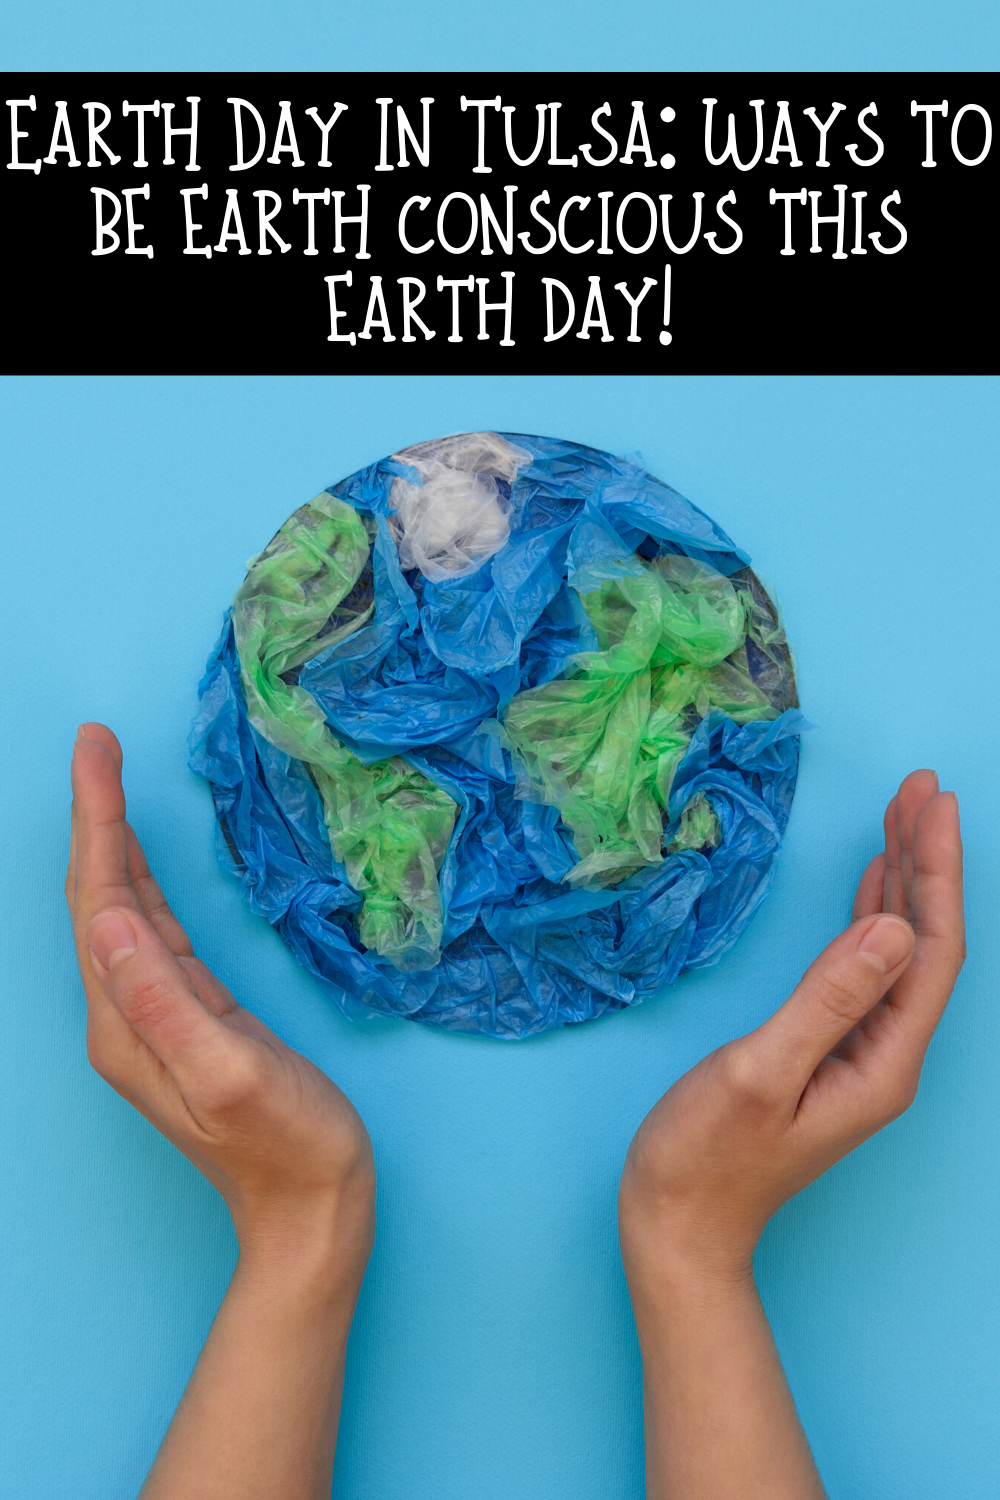 Earth Day in Tulsa is soon here! Are you ready? If you can't volunteer in Tulsa safety this year just use these tips to be more eco-friendly at home. These small changes are things we can all do right now to make a huge impact in the world.